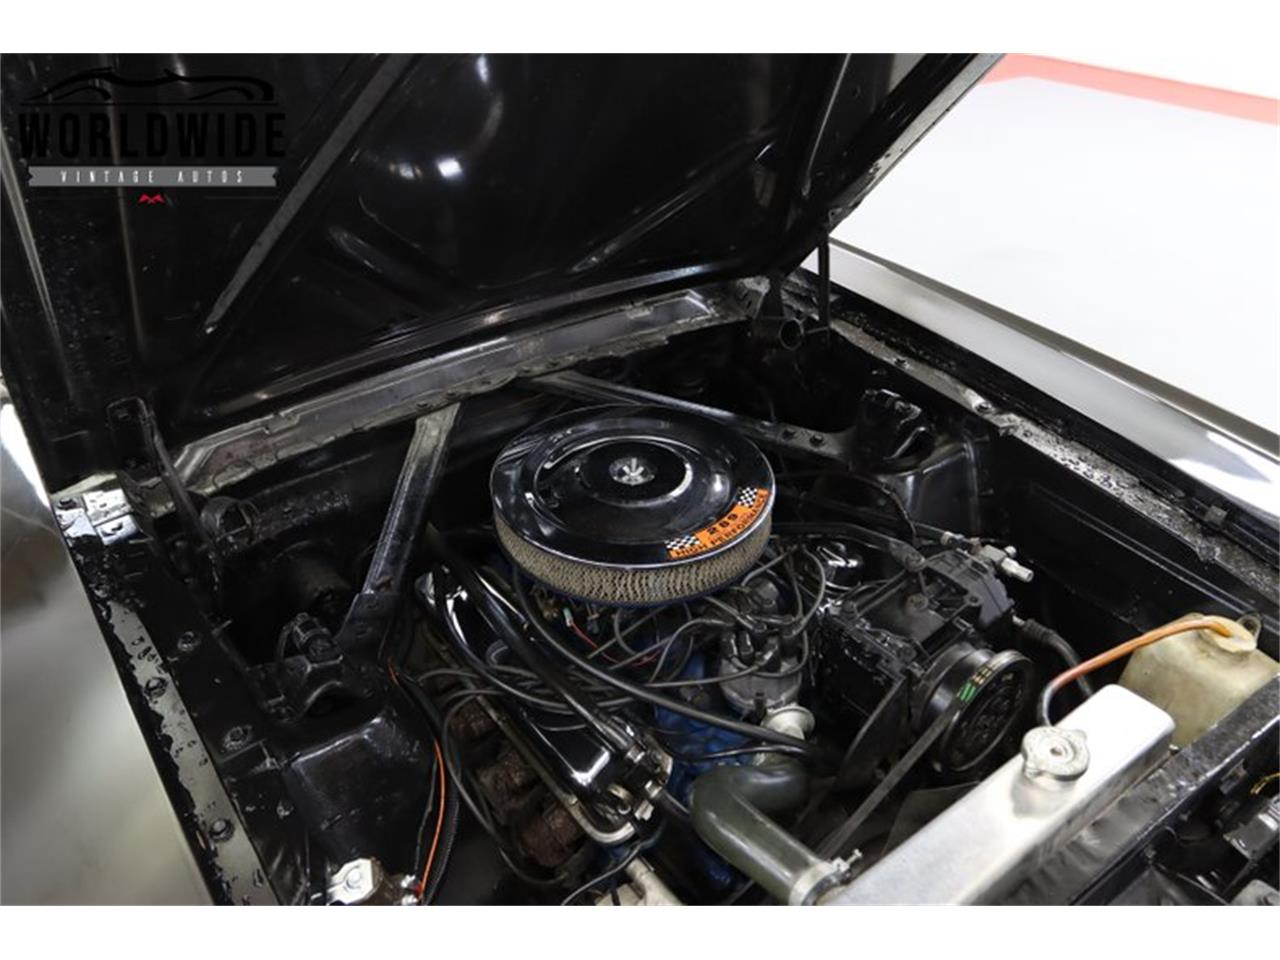 Ford Mustang Gt a v81965 prix tout compris